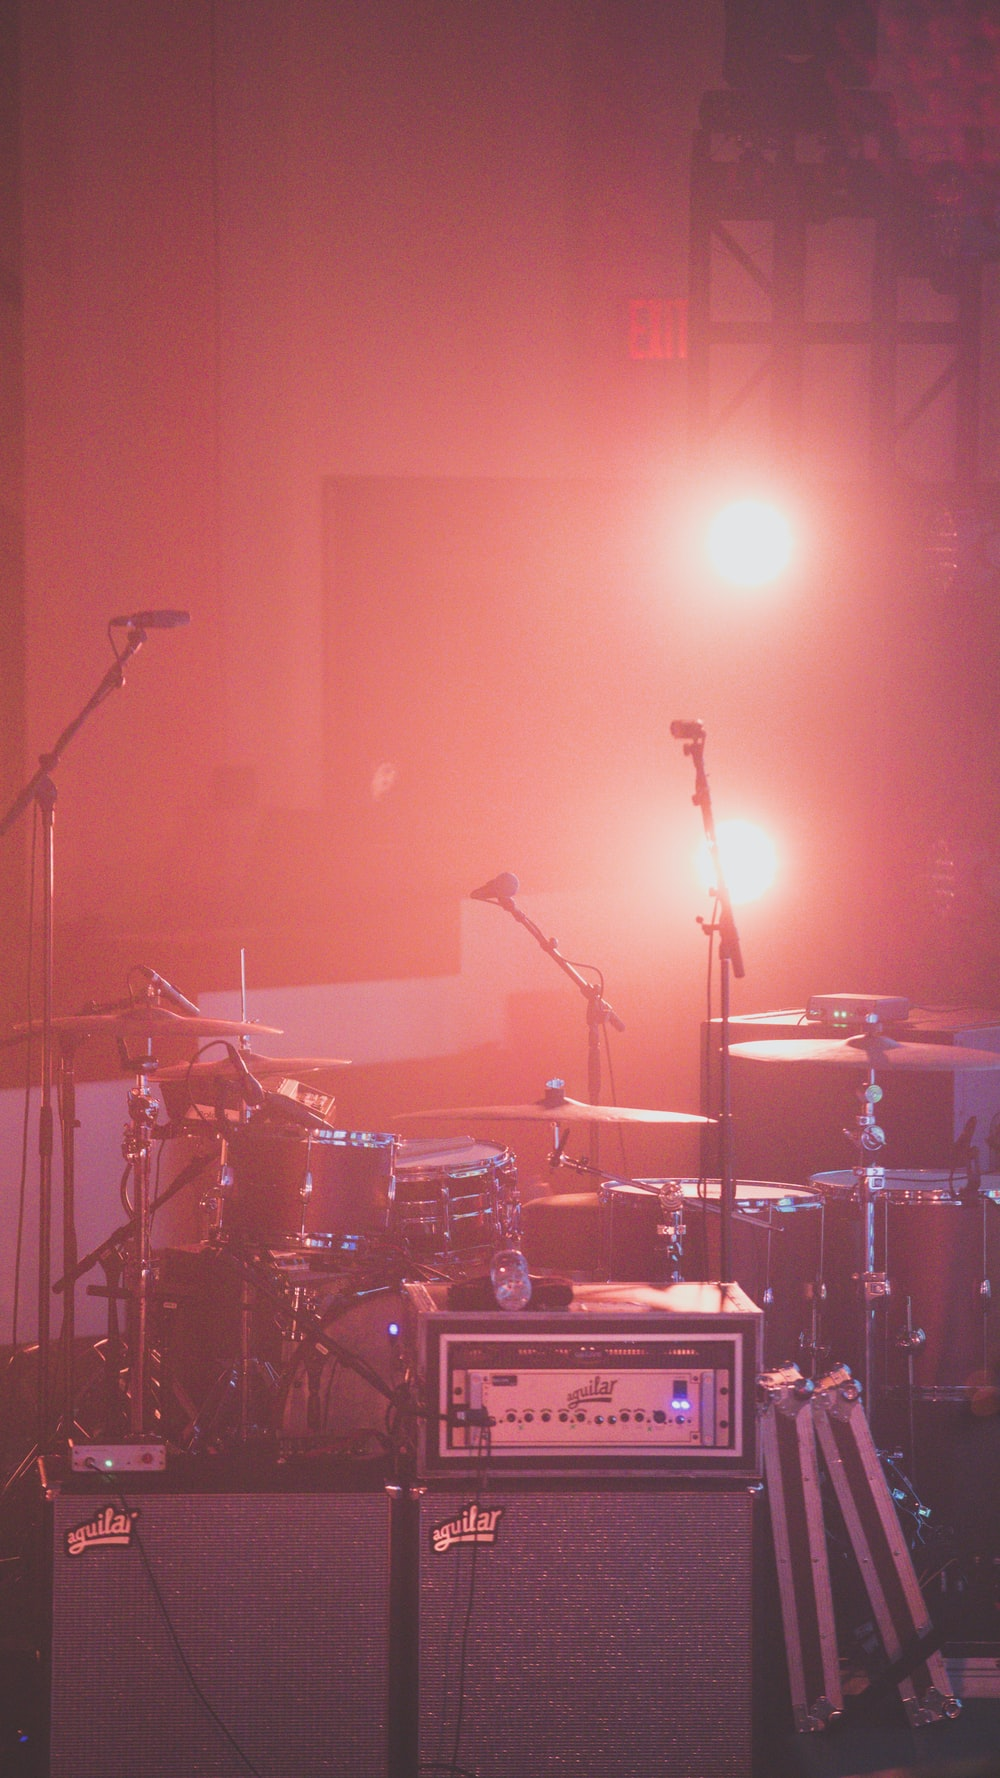 red drum set besides microphone stands